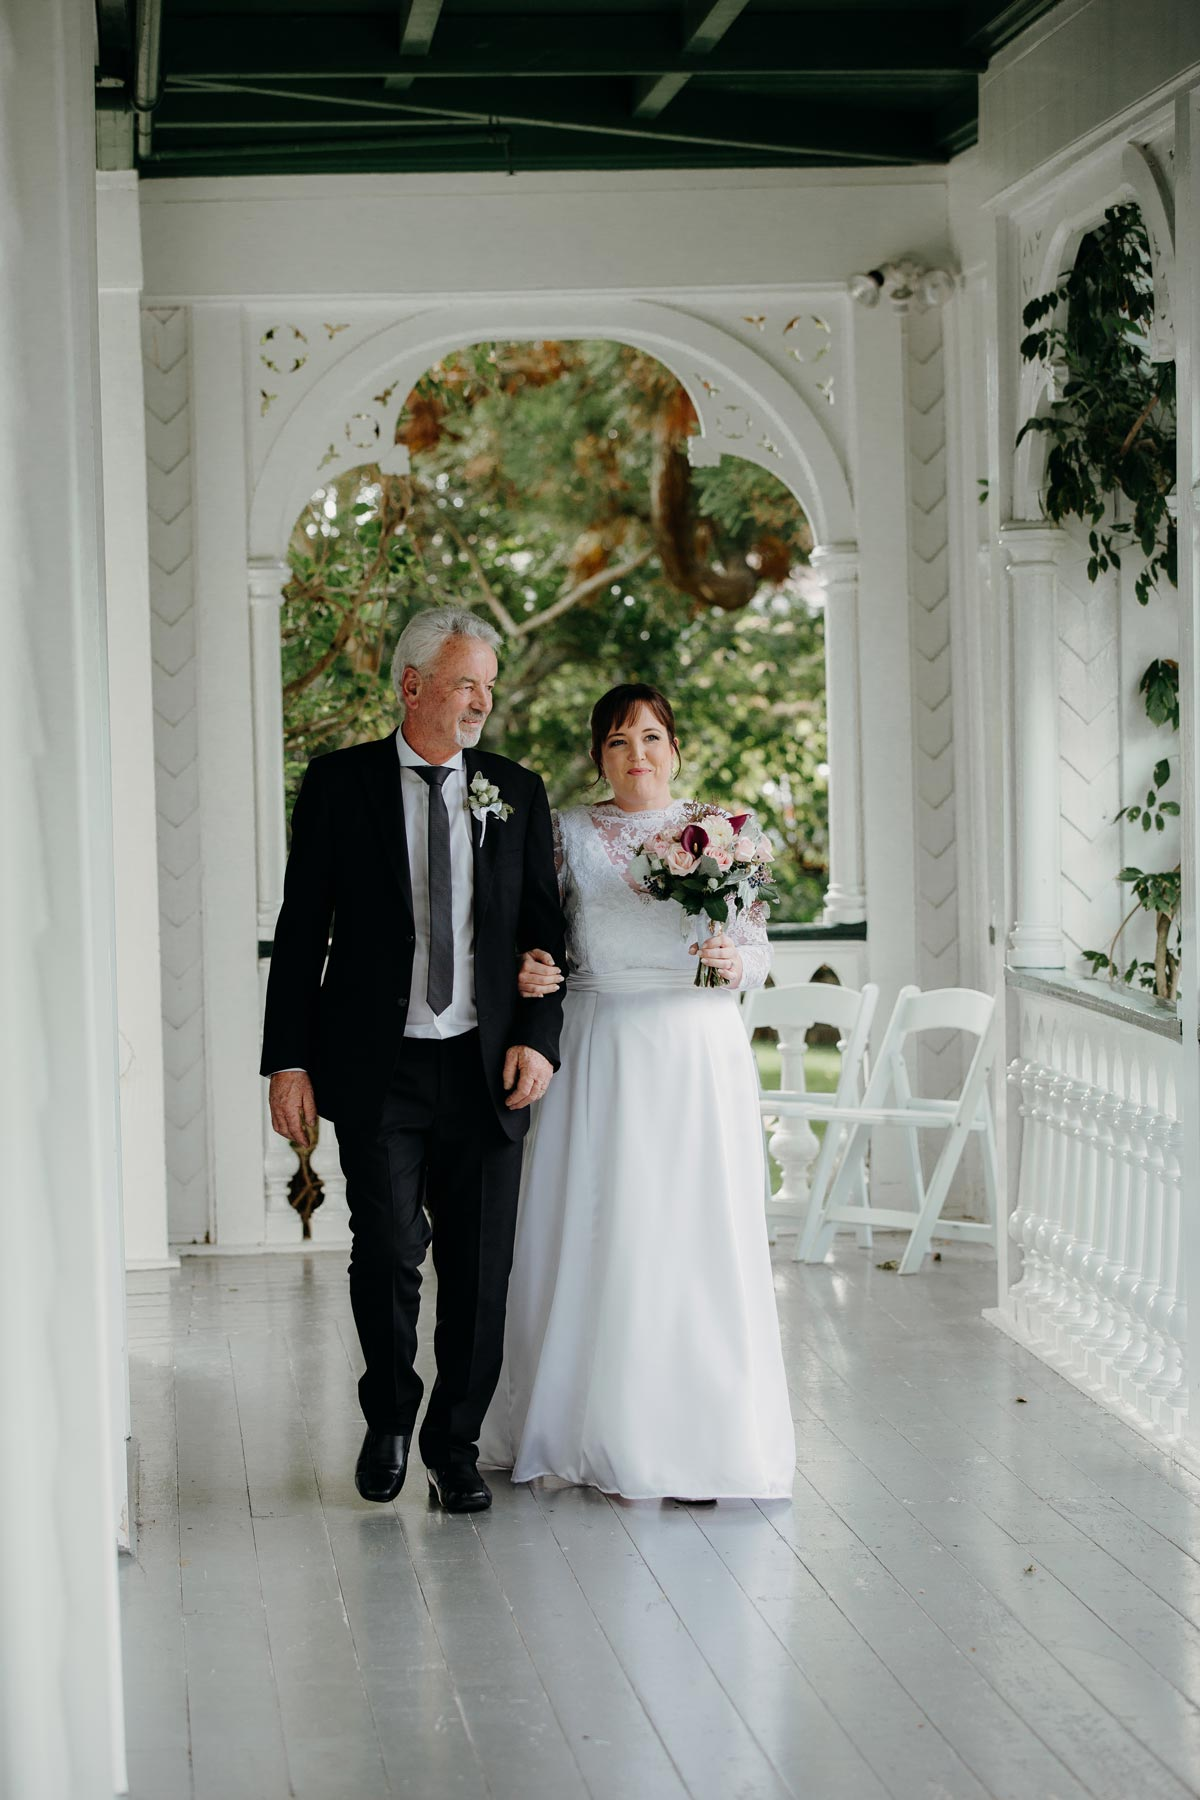 alberton wedding auckland historical wedding ceremony venue hire dad bride walking down aisle sarah weber photography